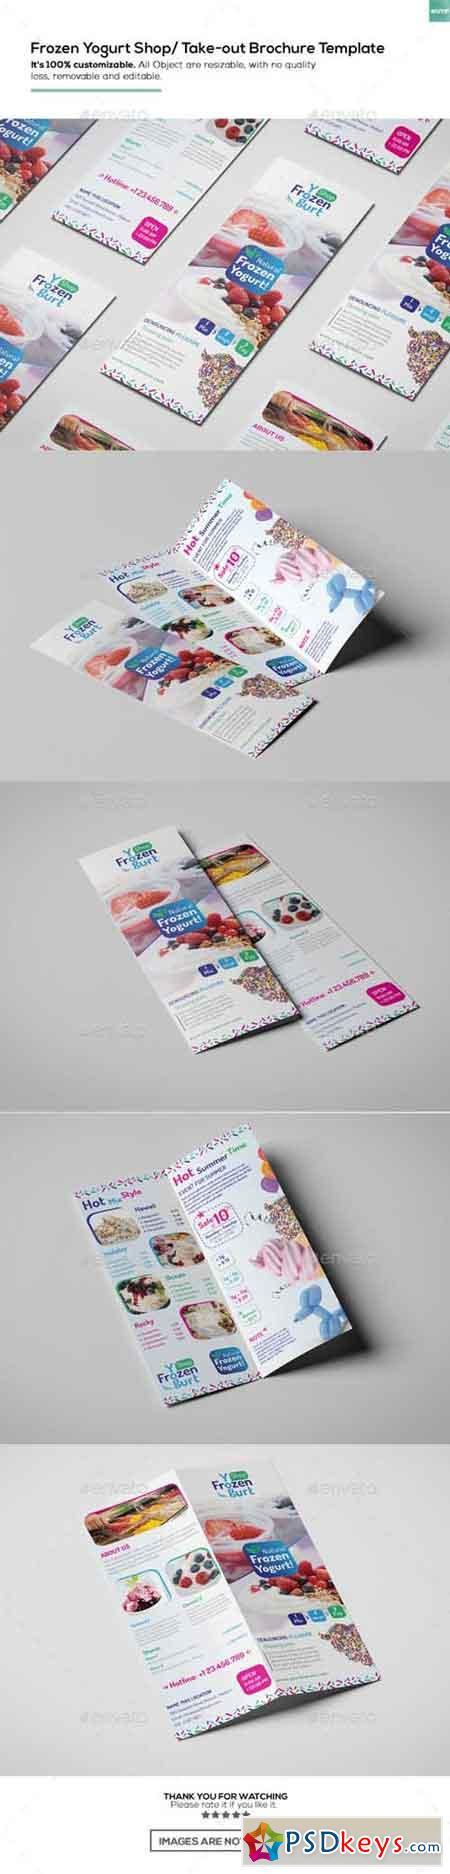 Frozen Yogurt Shop Take-out Brochure Template 16455695